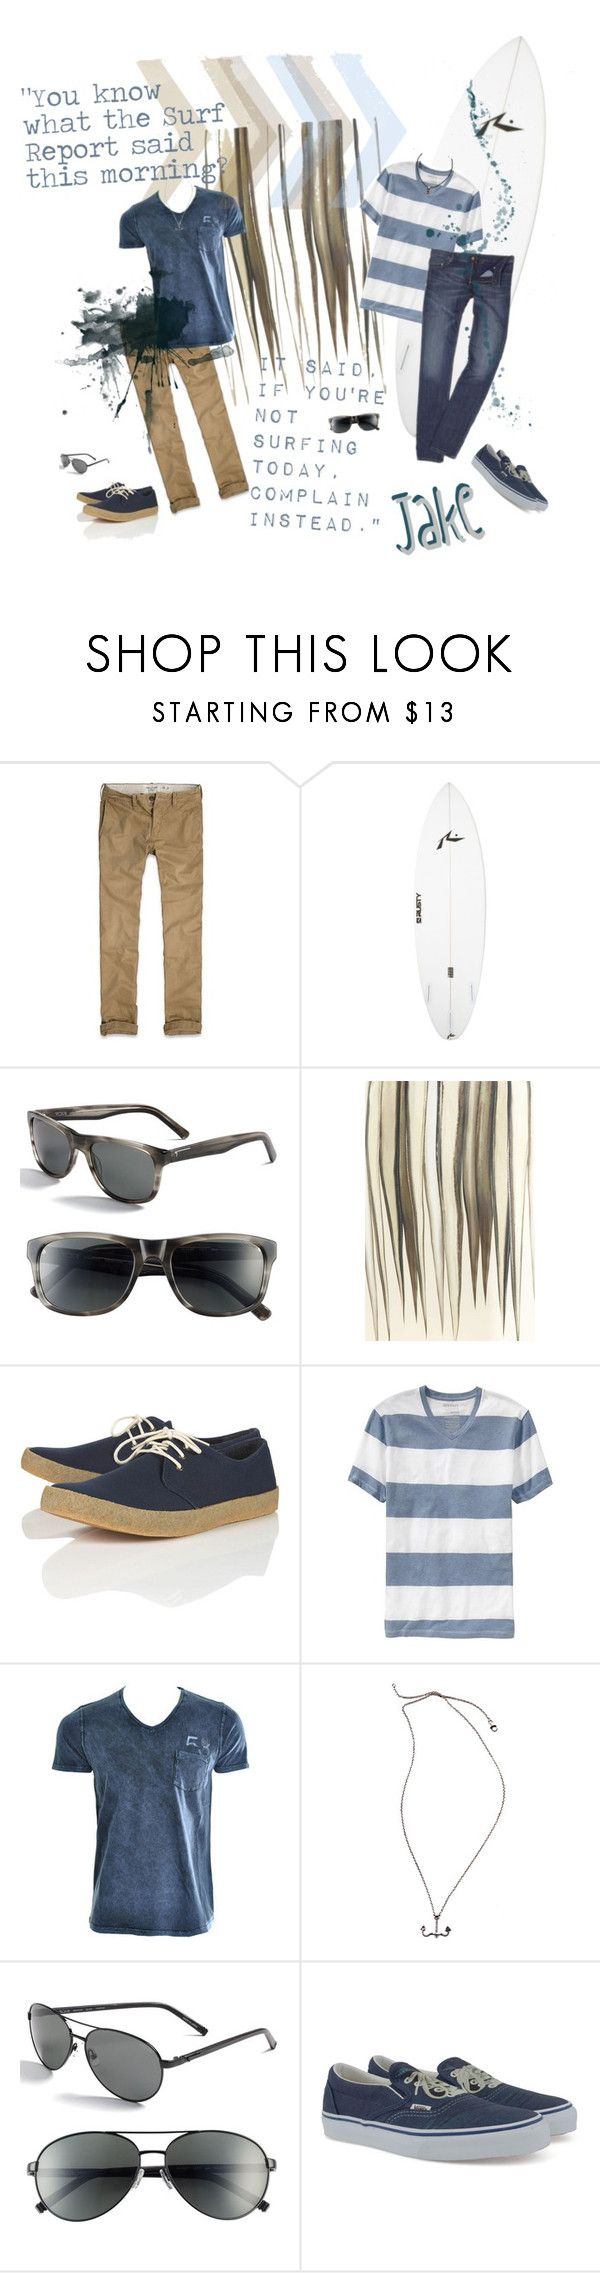 """Ready Or Not? Spring 2012 Costumes: The Rebels- Jake"" by blanche-neige ❤ liked on Polyvore featuring Abercrombie & Fitch, Rusty, Tumi, Oscar de la Renta, Old Navy, FLY53, POLICE, Vans, aviator sunglasses and polarized sunglasses"